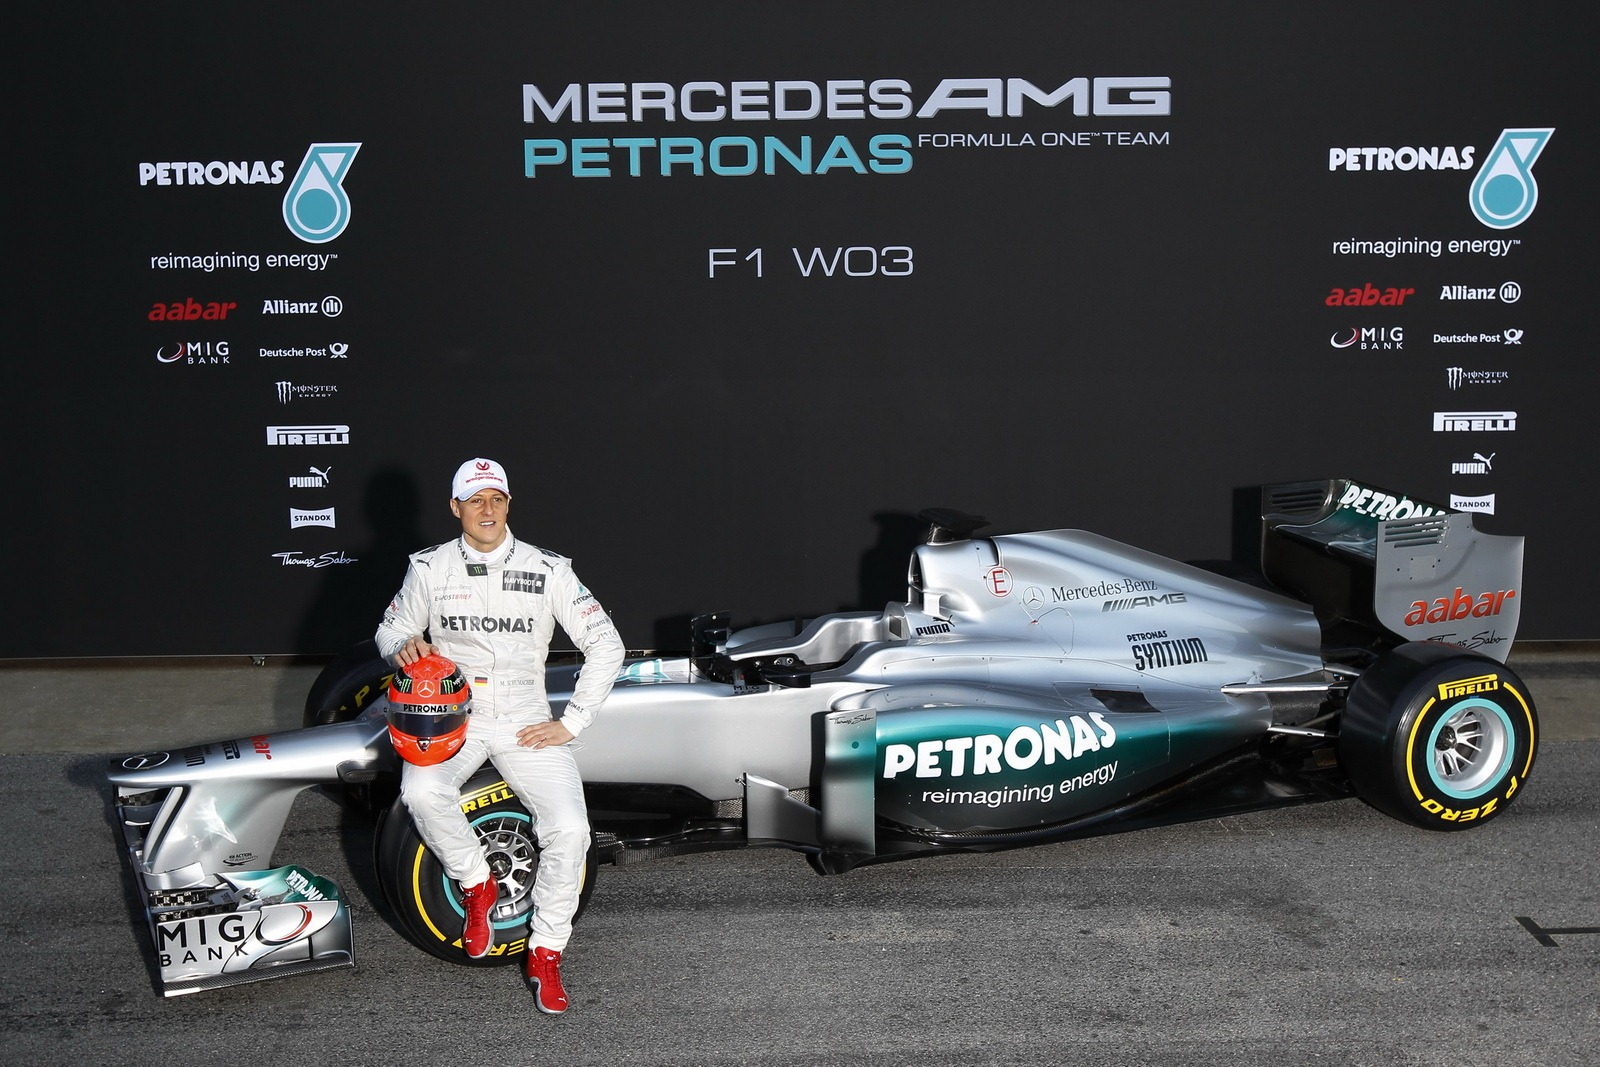 mercedes gp f1 petronas hd free high definition wallpapers. Black Bedroom Furniture Sets. Home Design Ideas